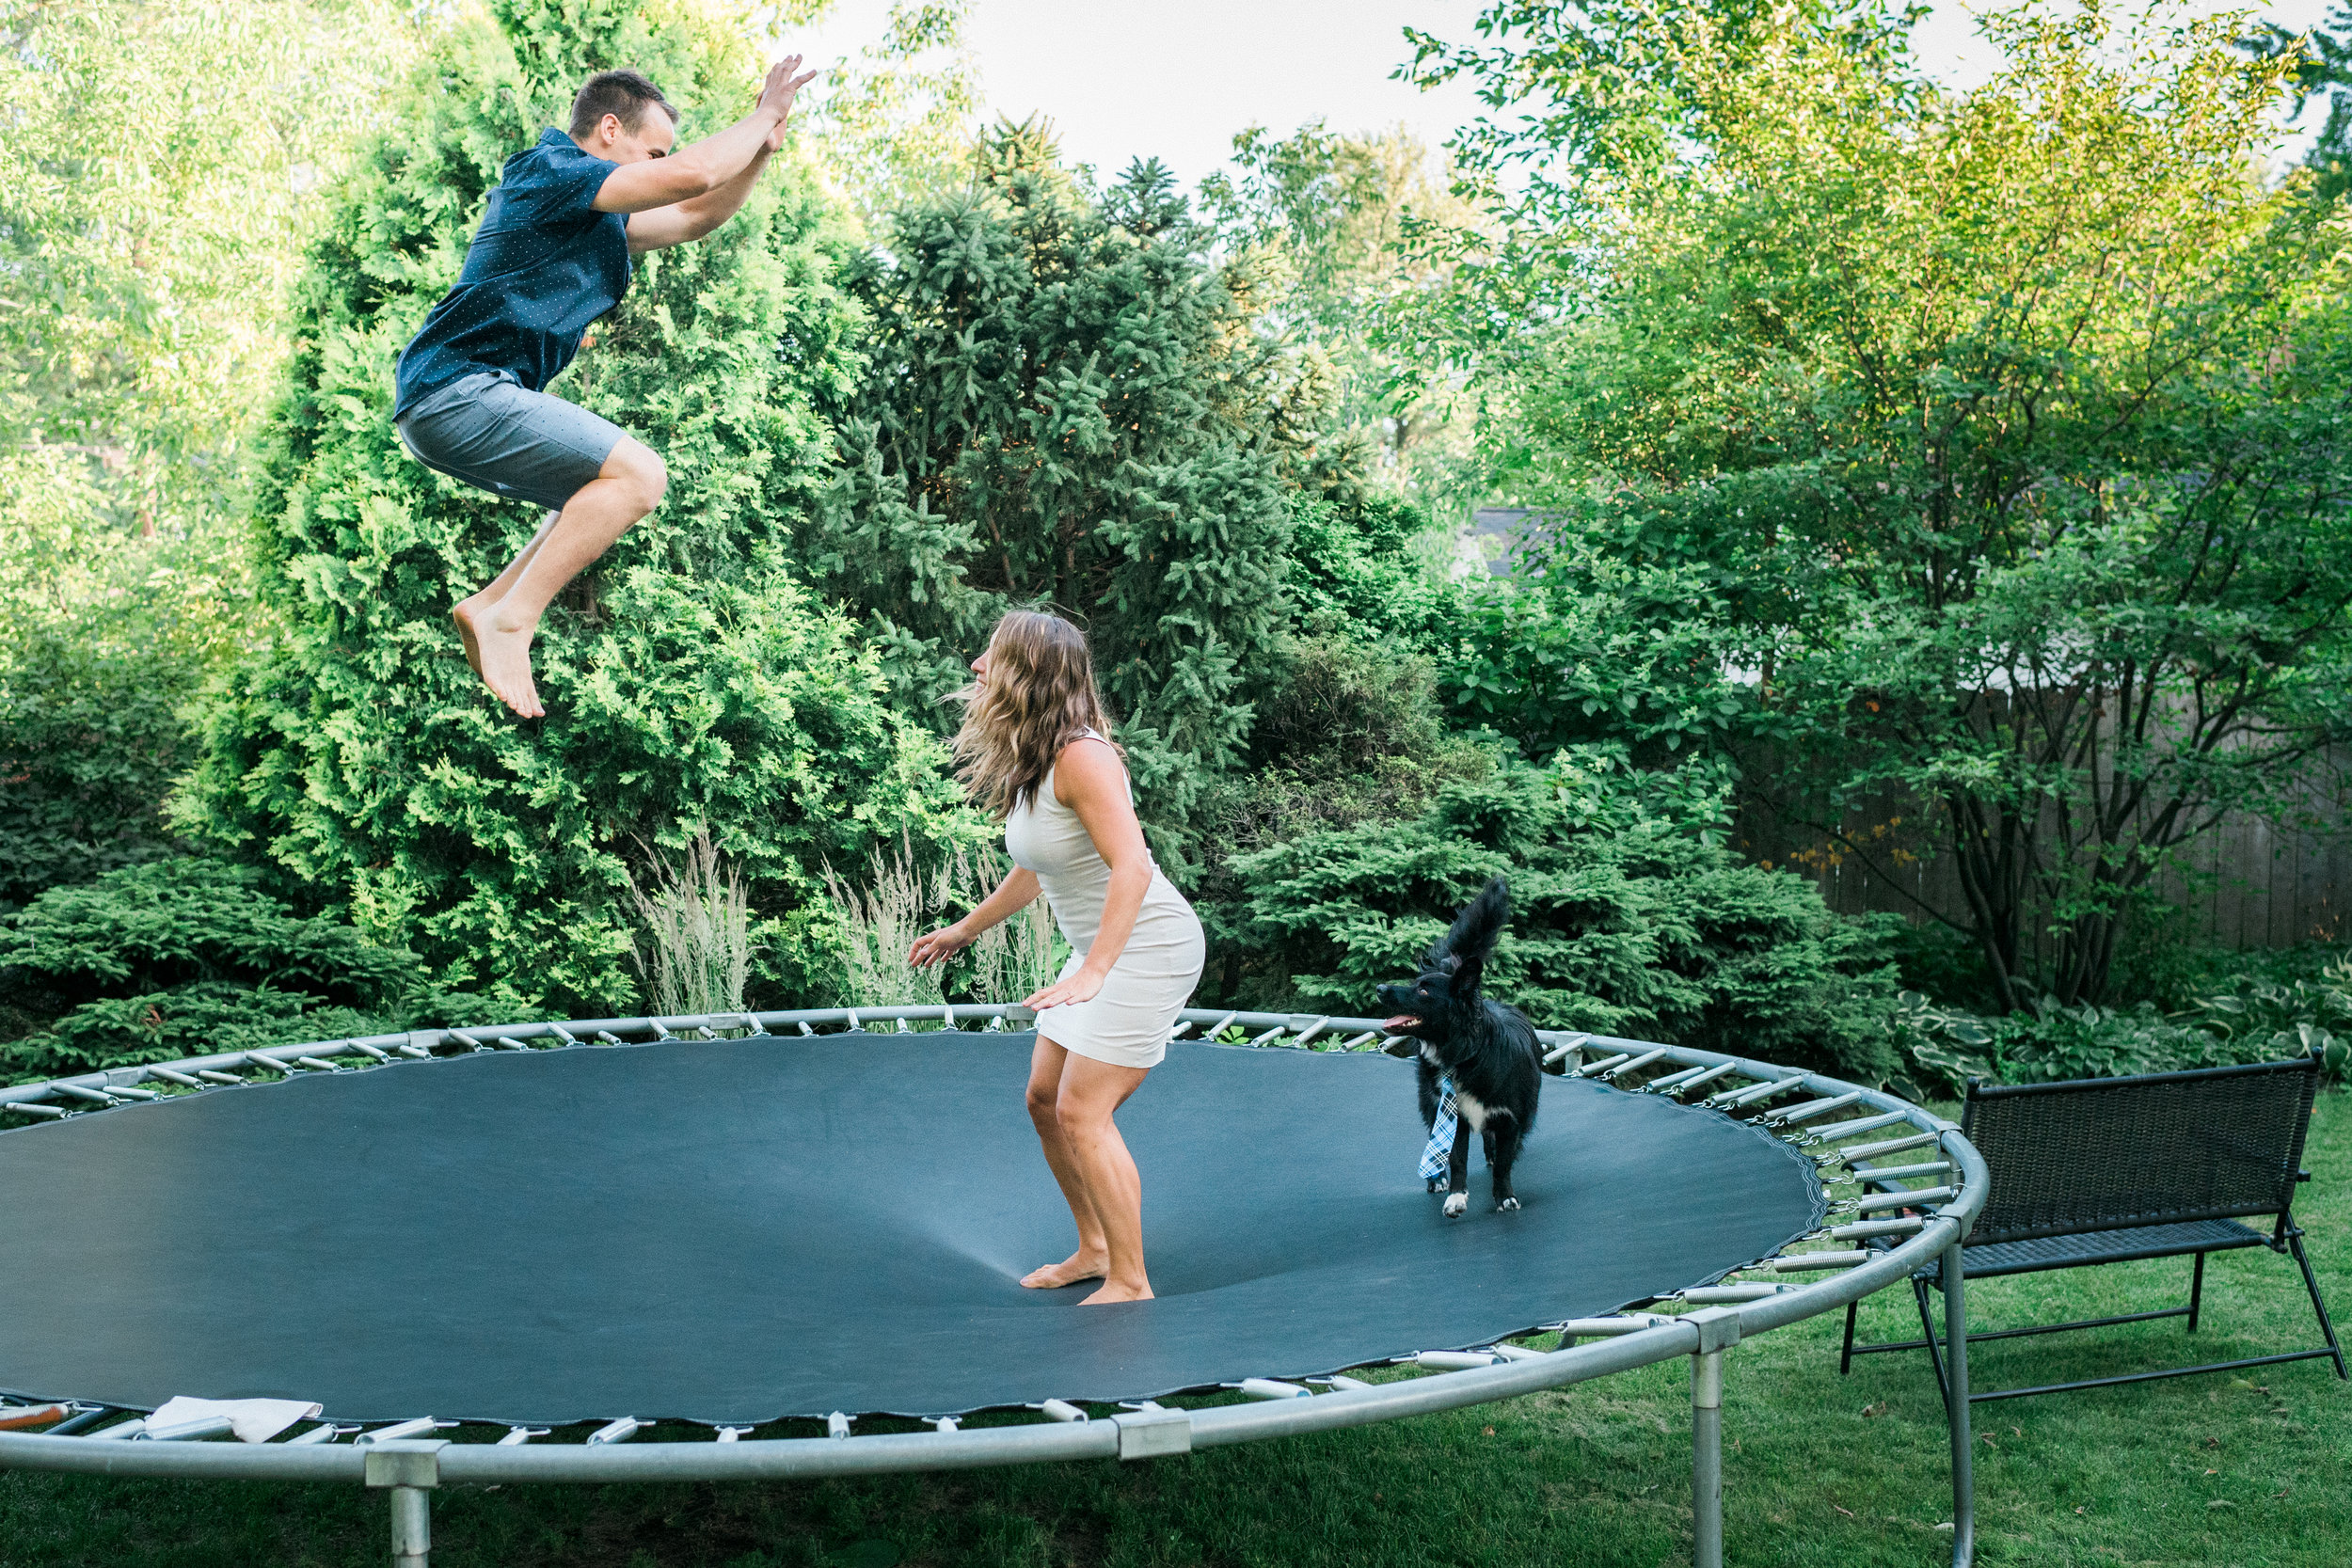 Engaged couple jumping on a trampolin with their dog.